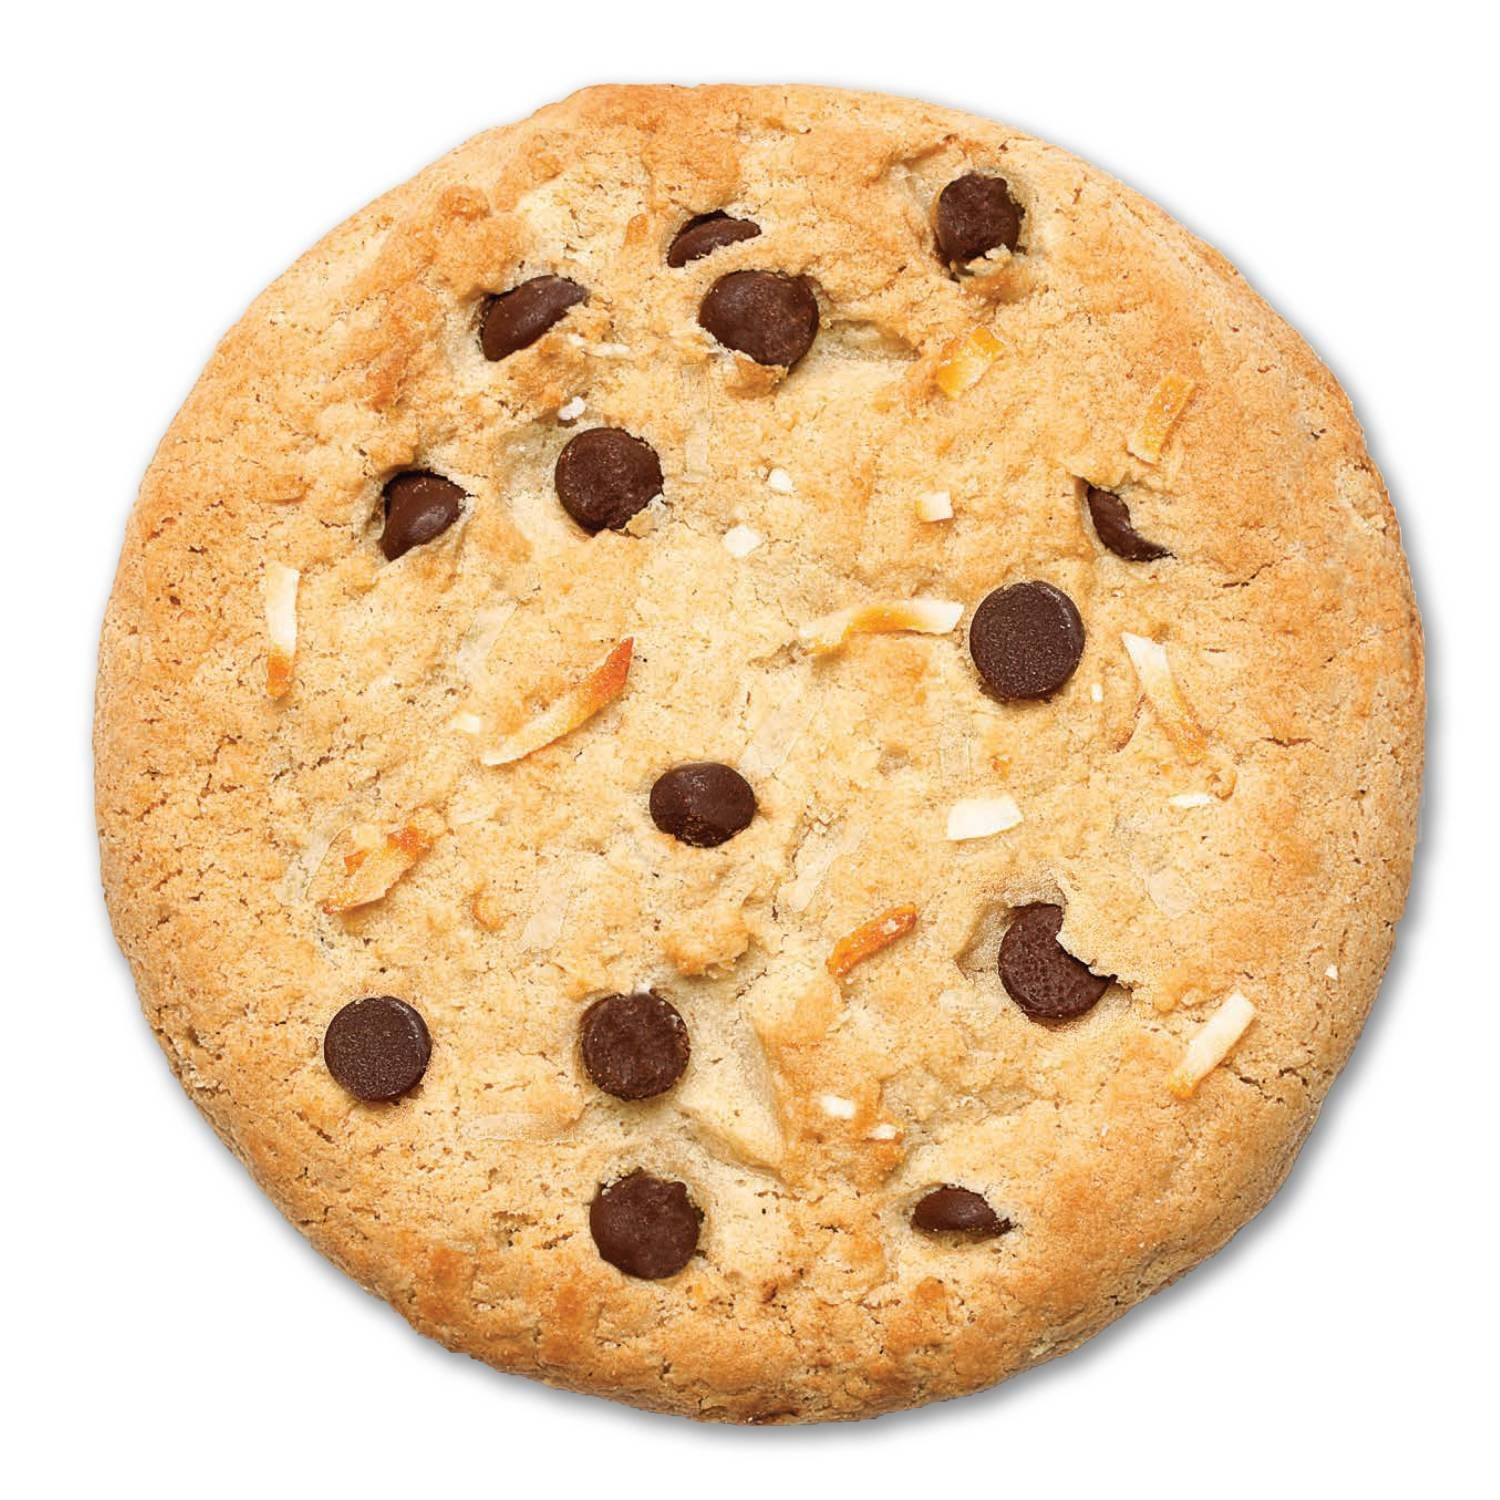 [SALE] Lenny & Larry's The Complete Cookie, Coconut Chocolate Chip, 4-Ounce Cookies (Pack of 12) by Lenny & Larry's (Image #2)